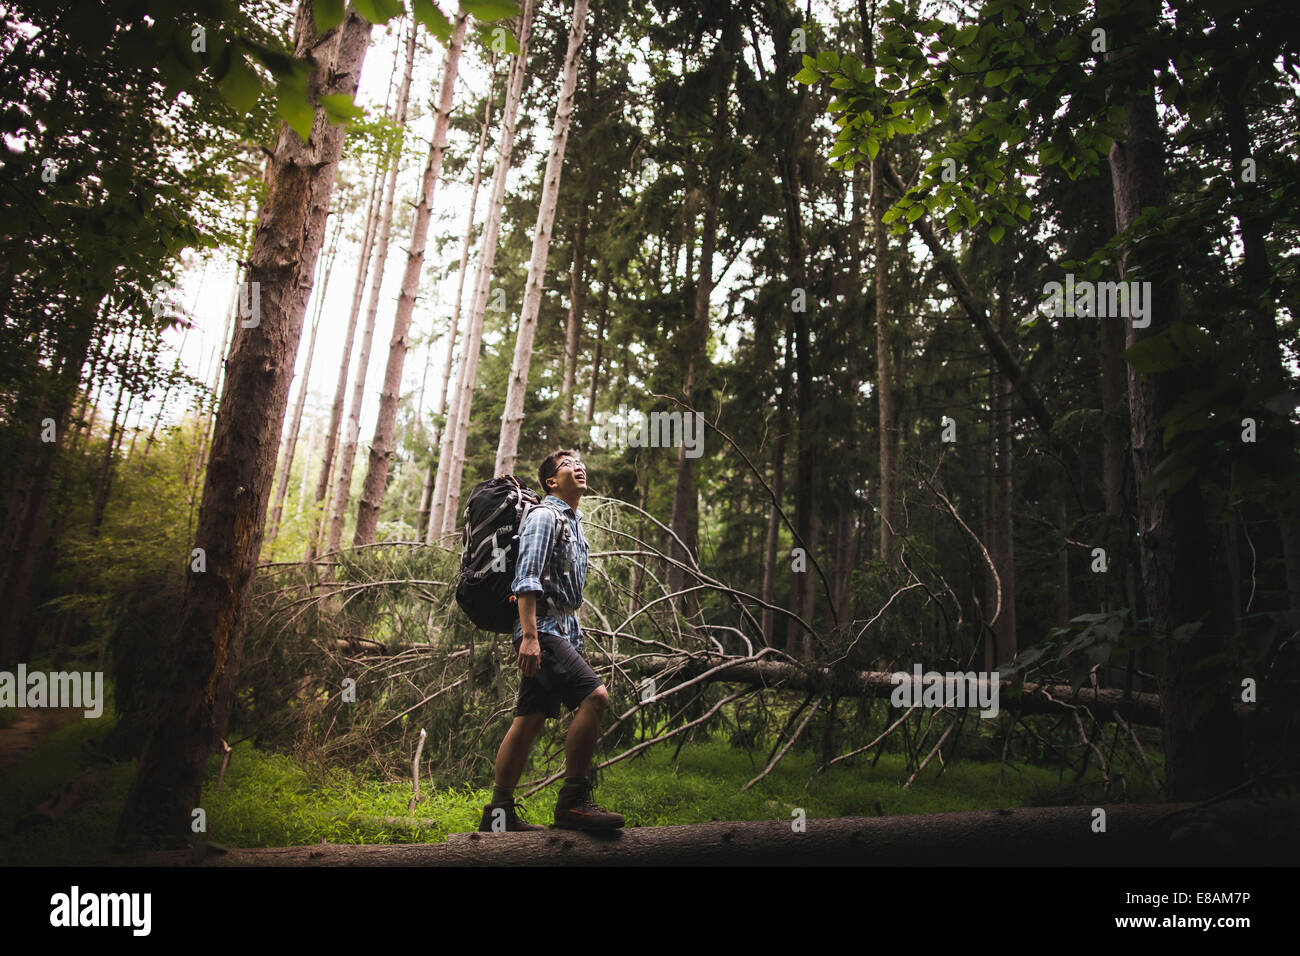 Mature man hiking in forest Photo Stock